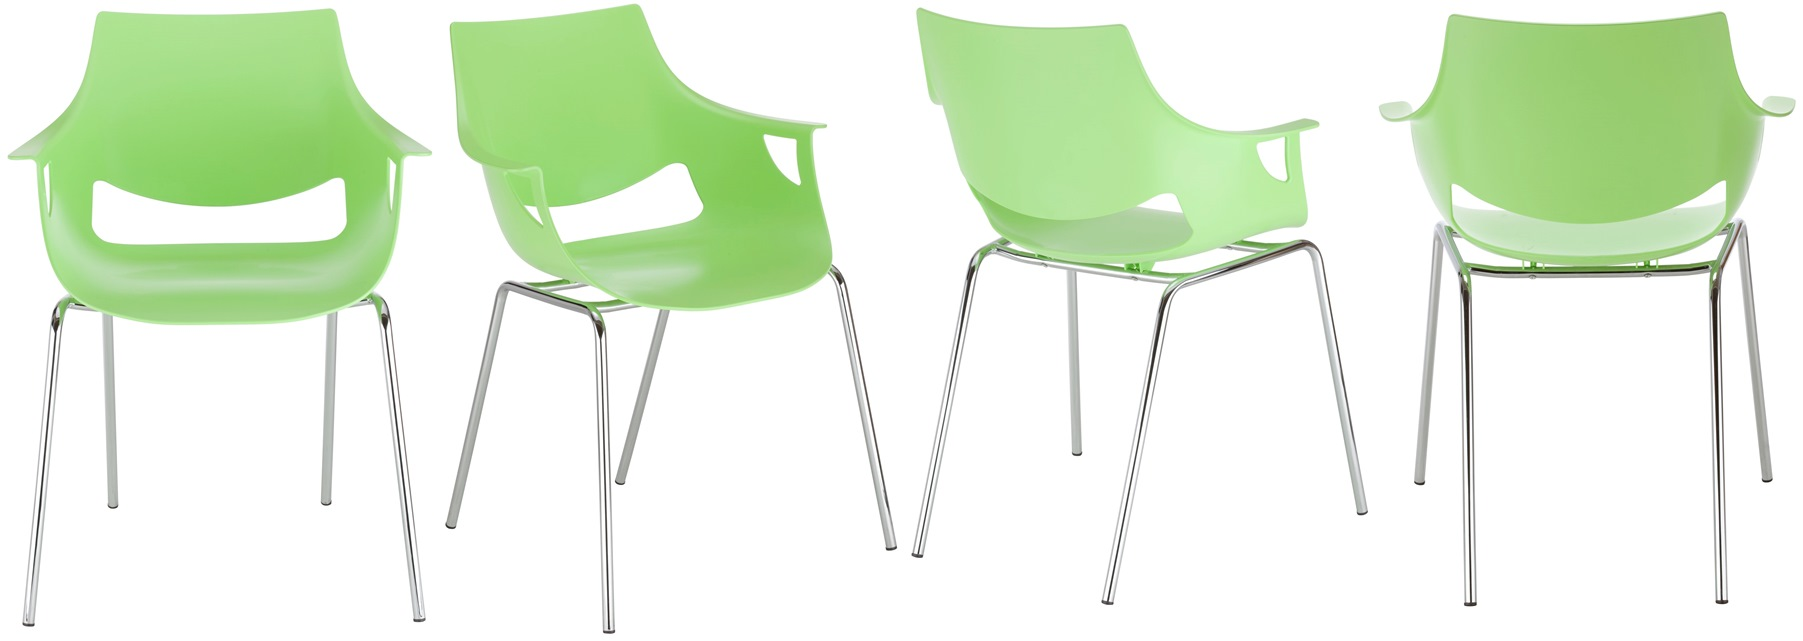 Fano Bistro Chair Group